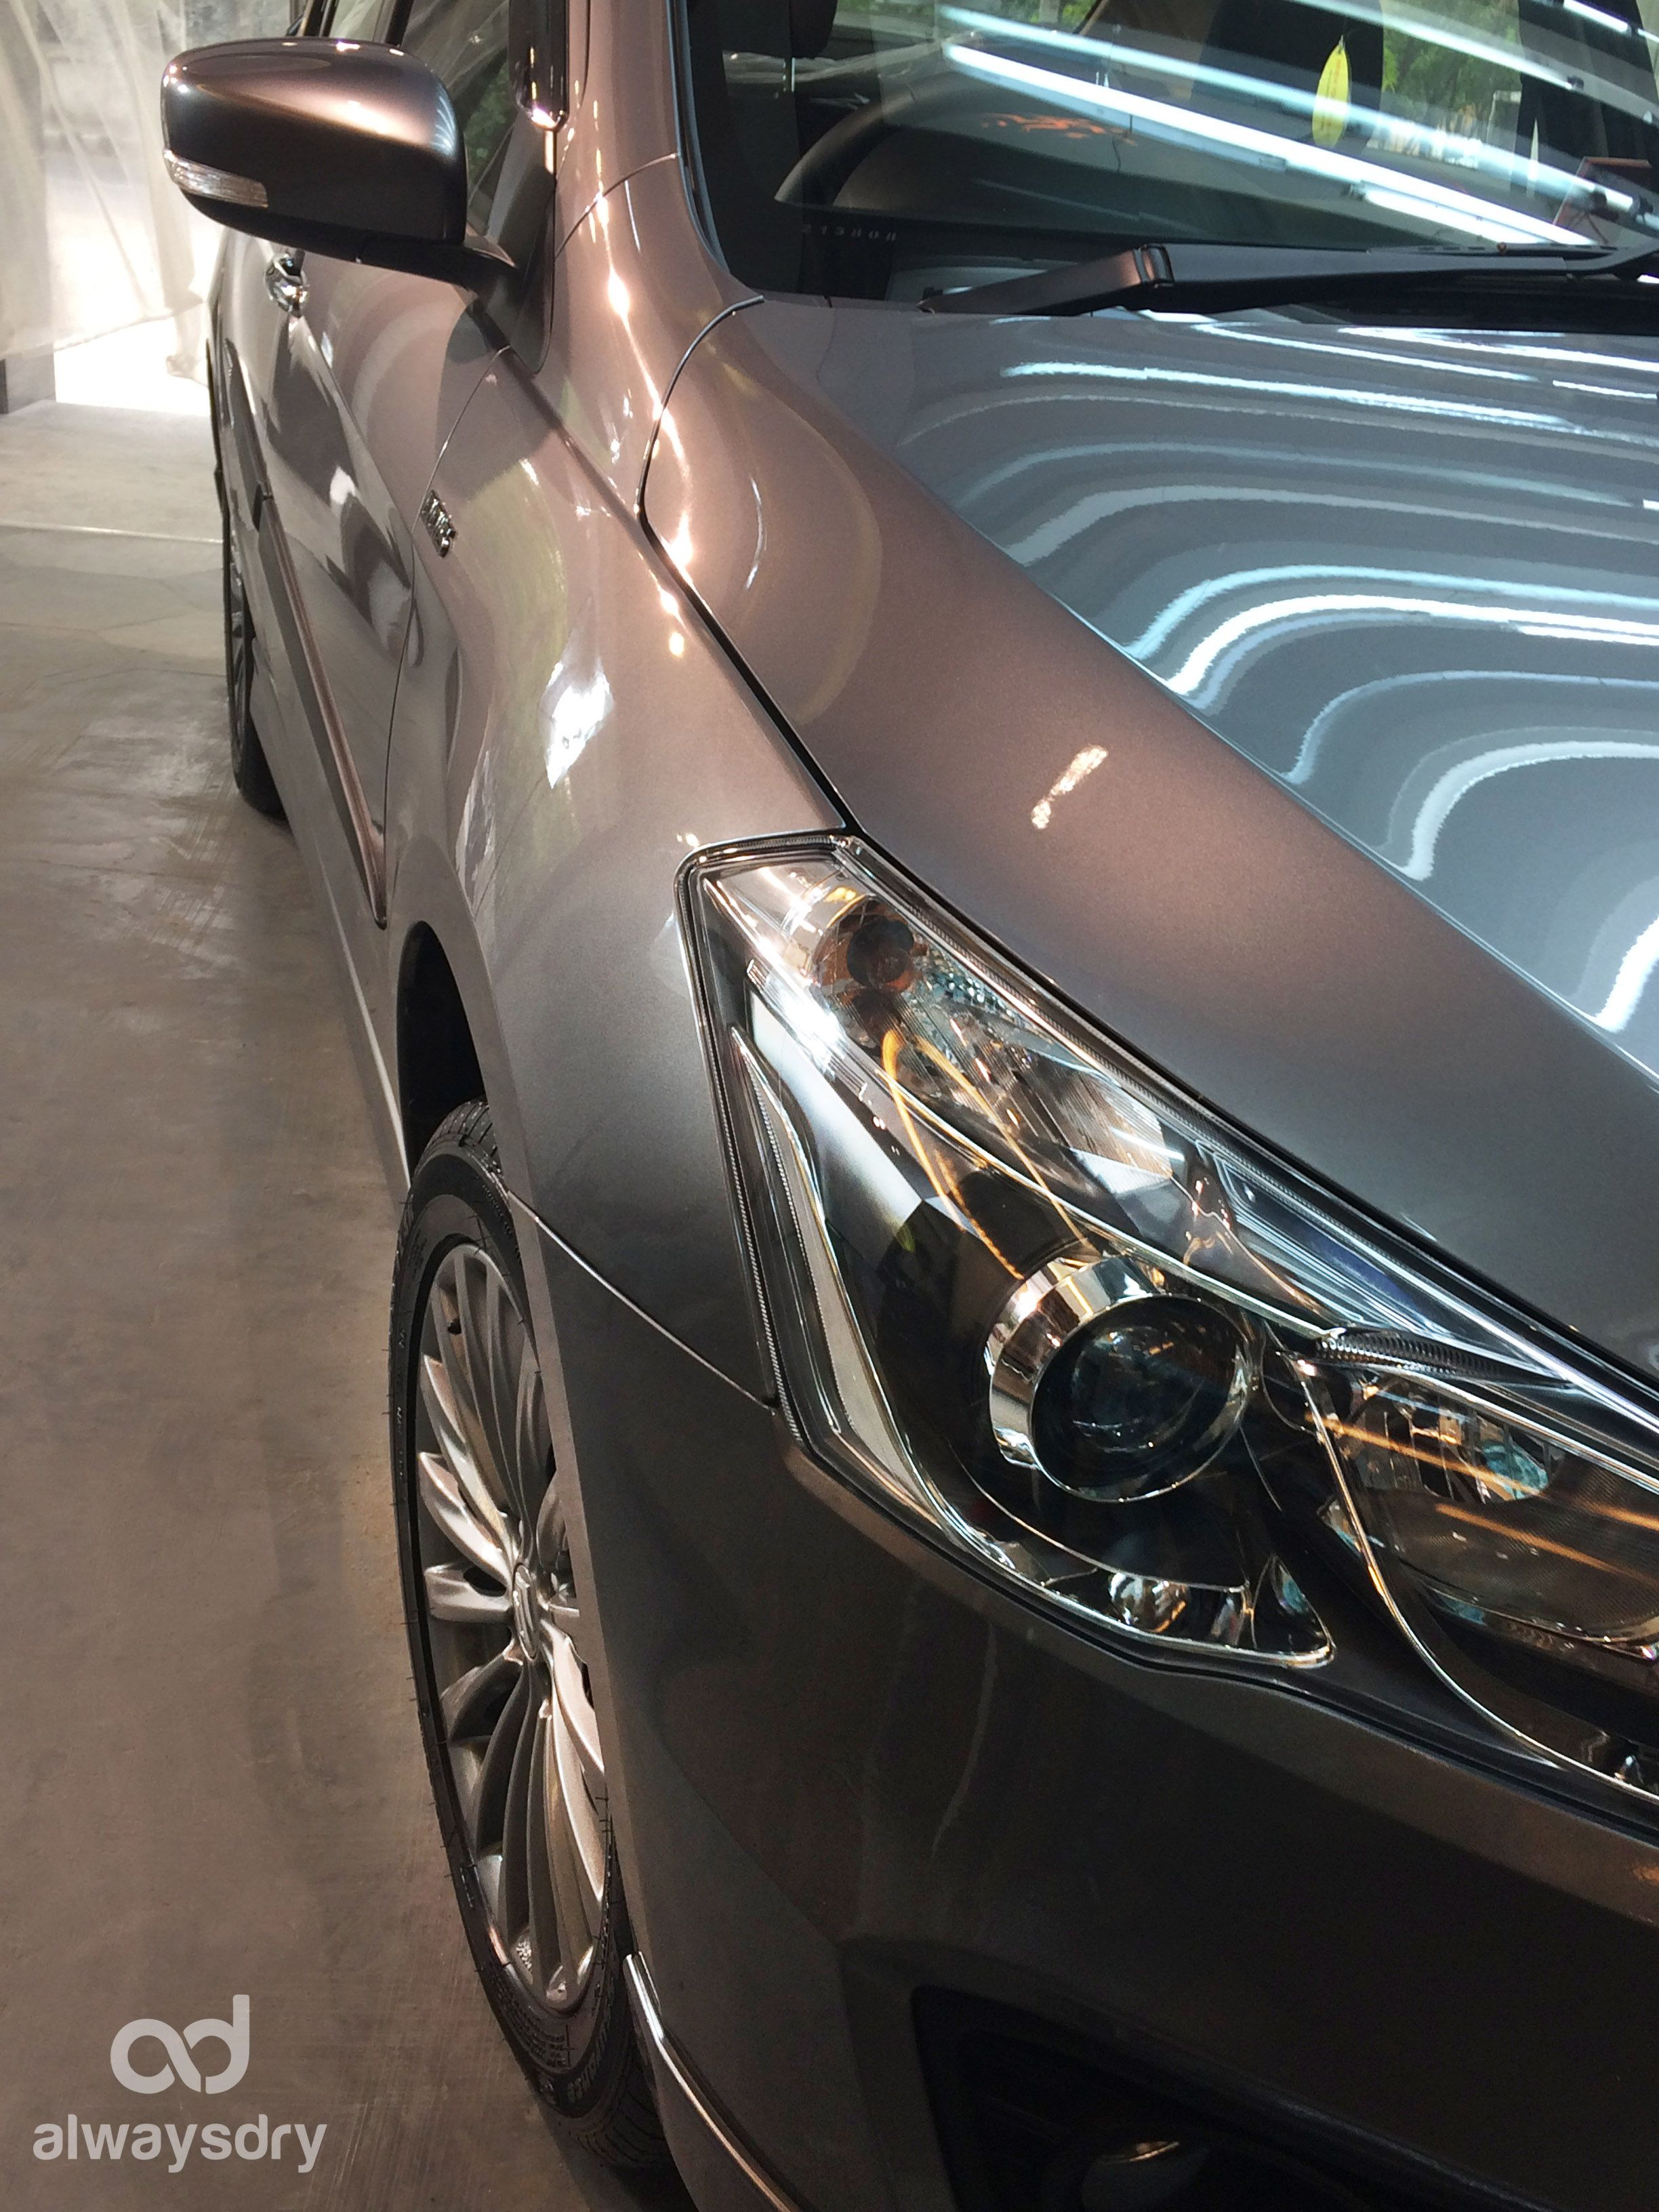 New MarutiSuzukiCiaz joined the ultimate coating obsession 9H LDC